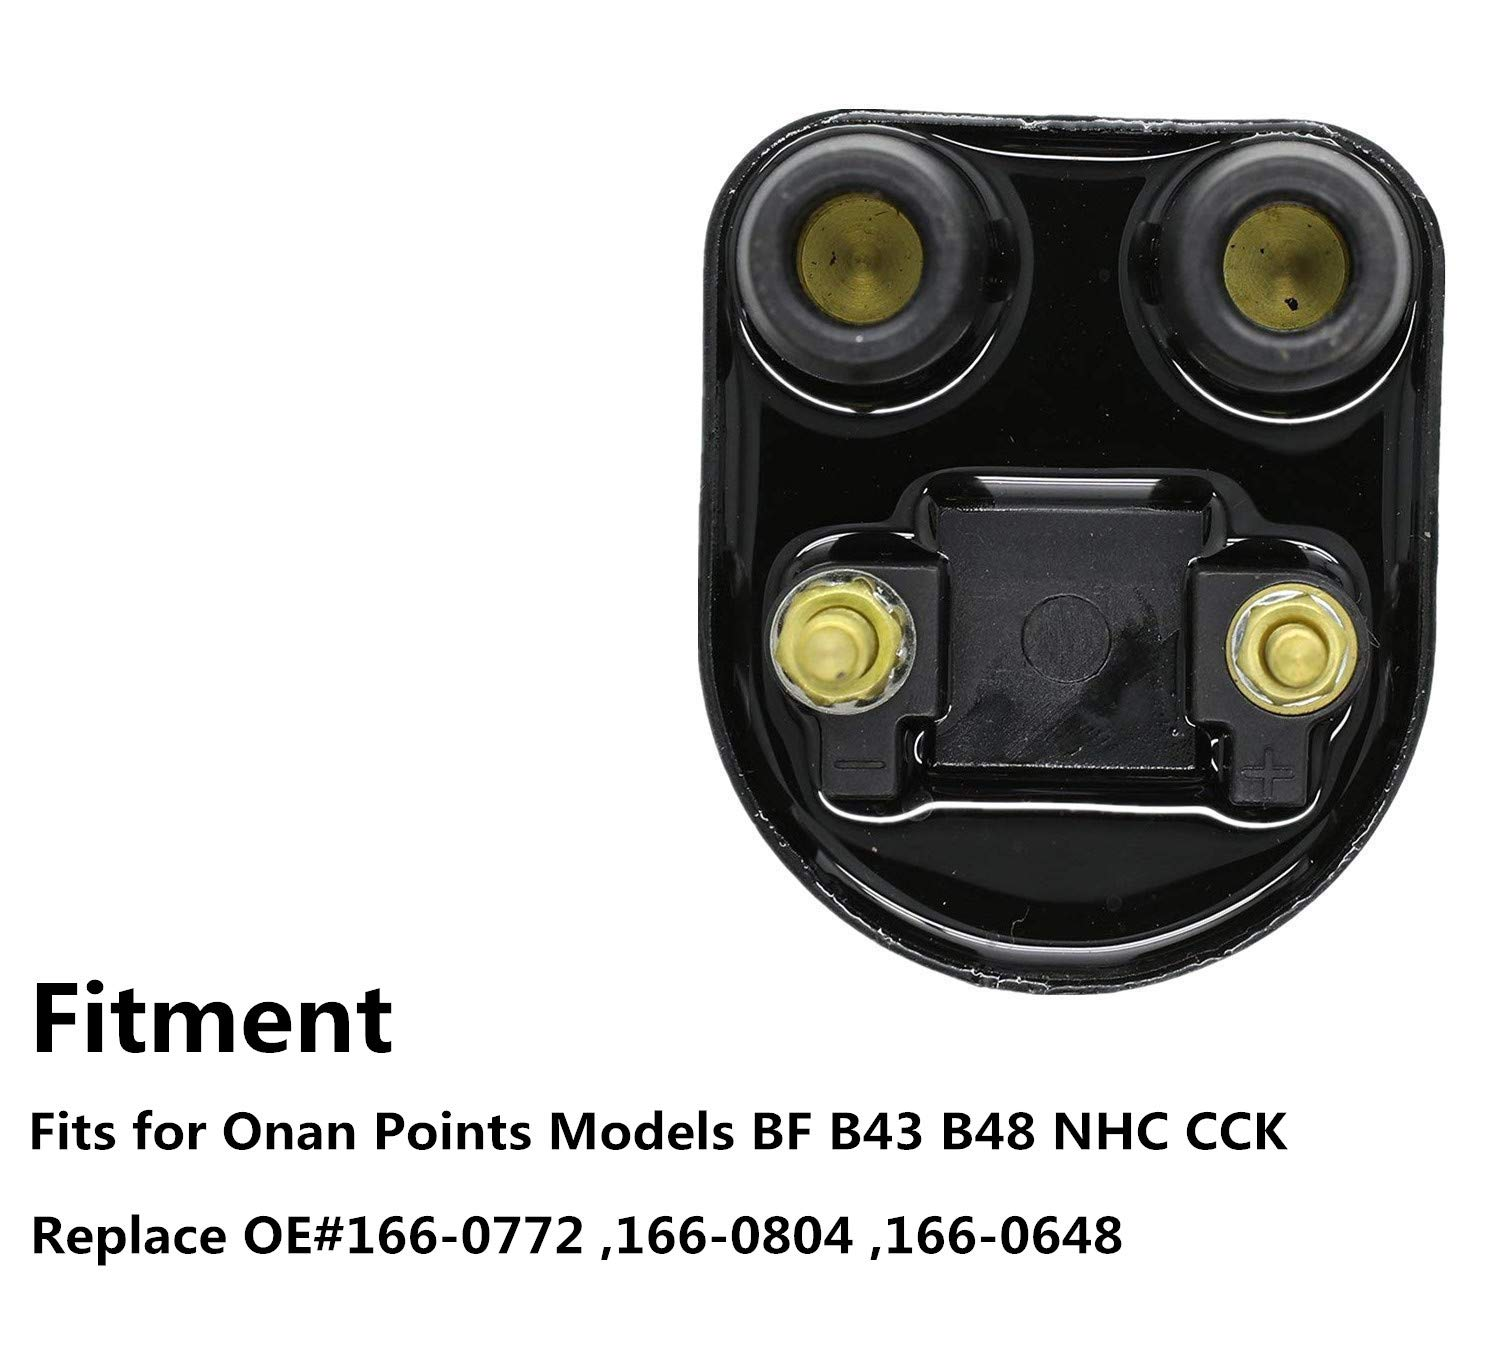 Ignition Coil For Onan Points Models Bf B43 B48 Nhc Cck Cub Cadet Engine Wiring Diagram Replaces Oe166 0648 166 0772 0804 New Automotive